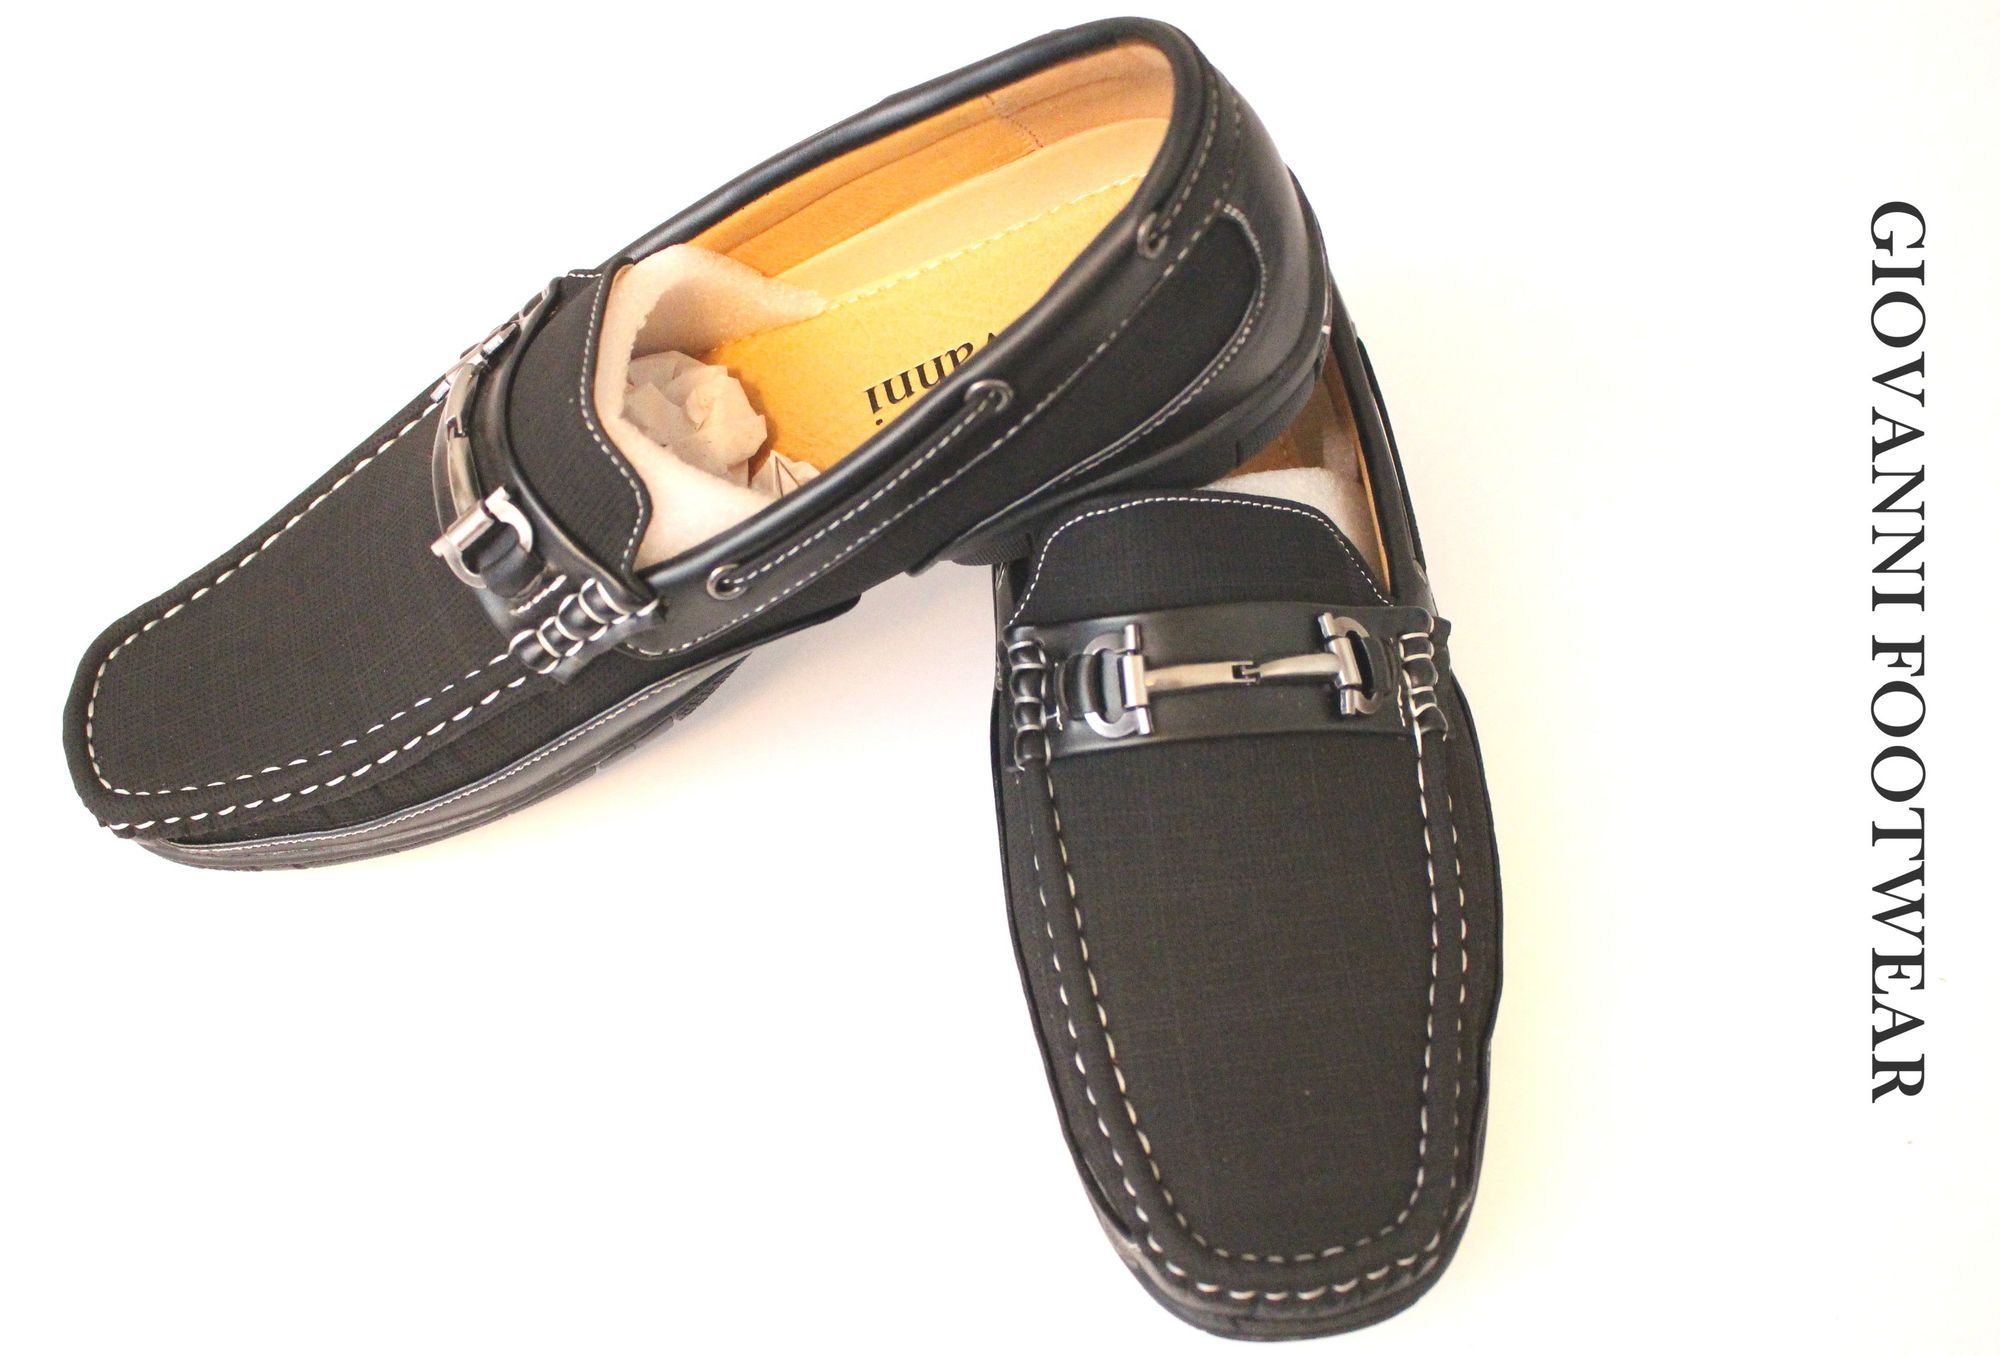 c3221e506d6 Casual Slip on Giovanni Loafer Dress Shoes - Black